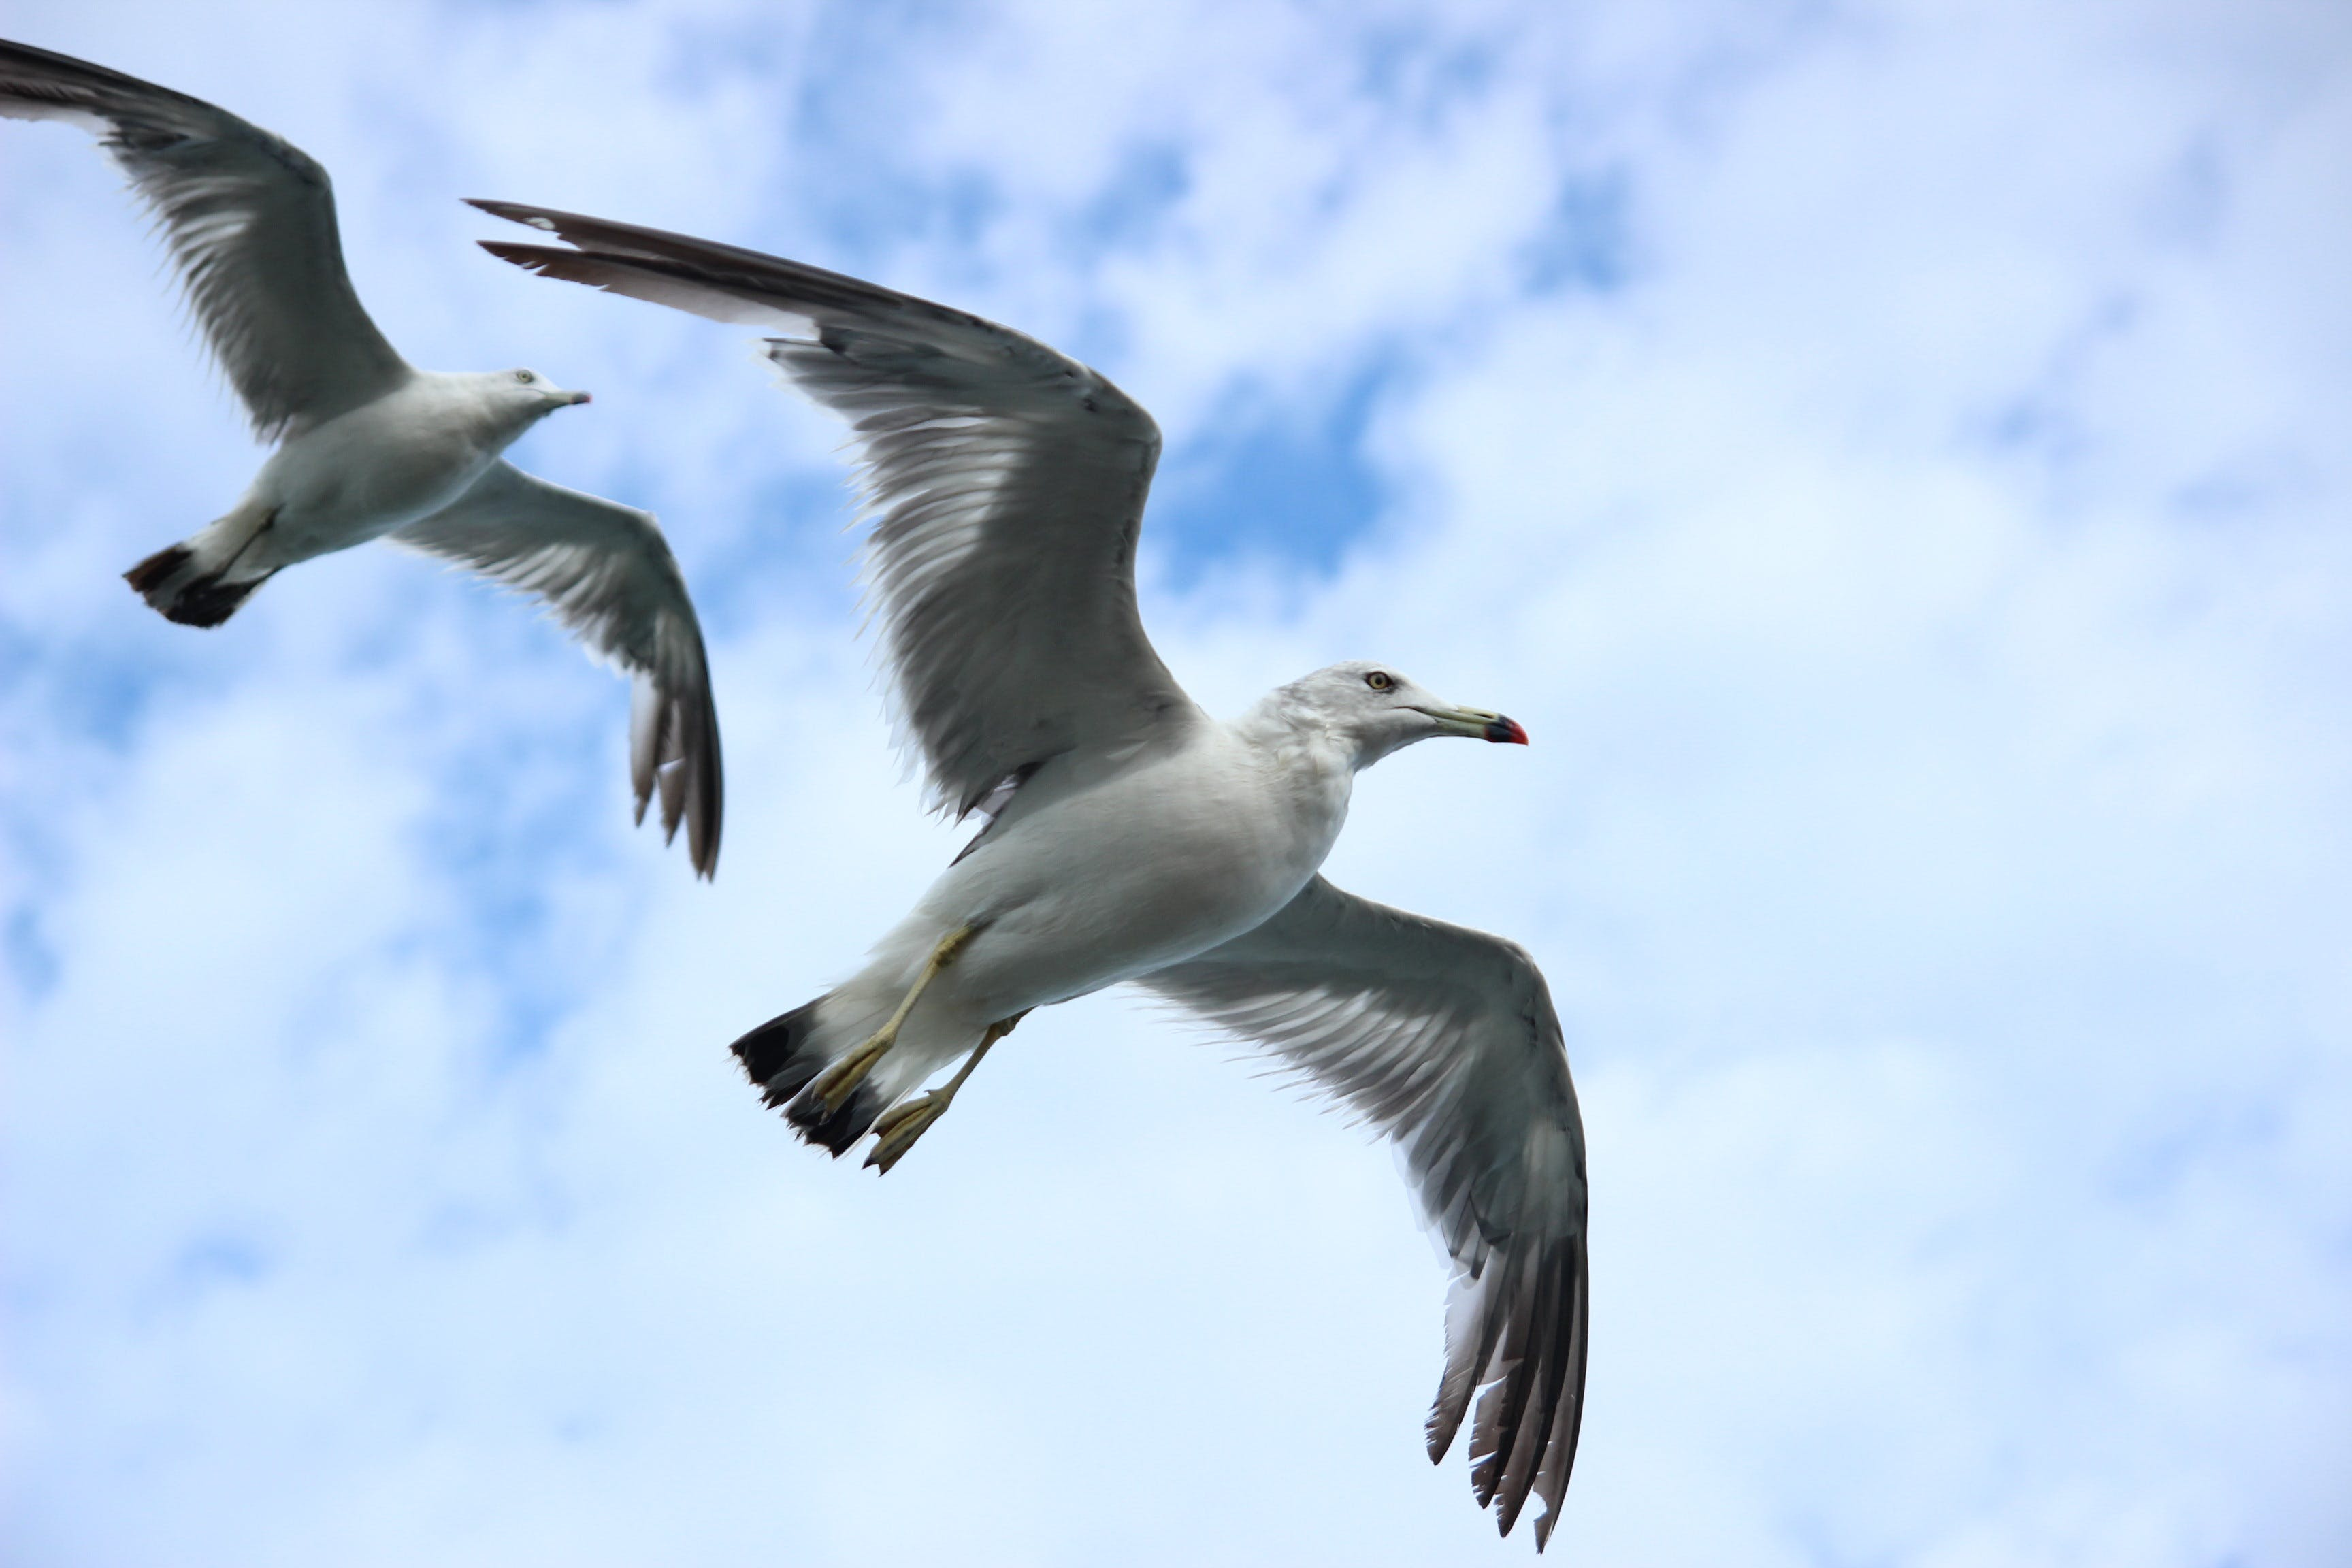 Two White Seagulls Flying Under Blue and White Sky